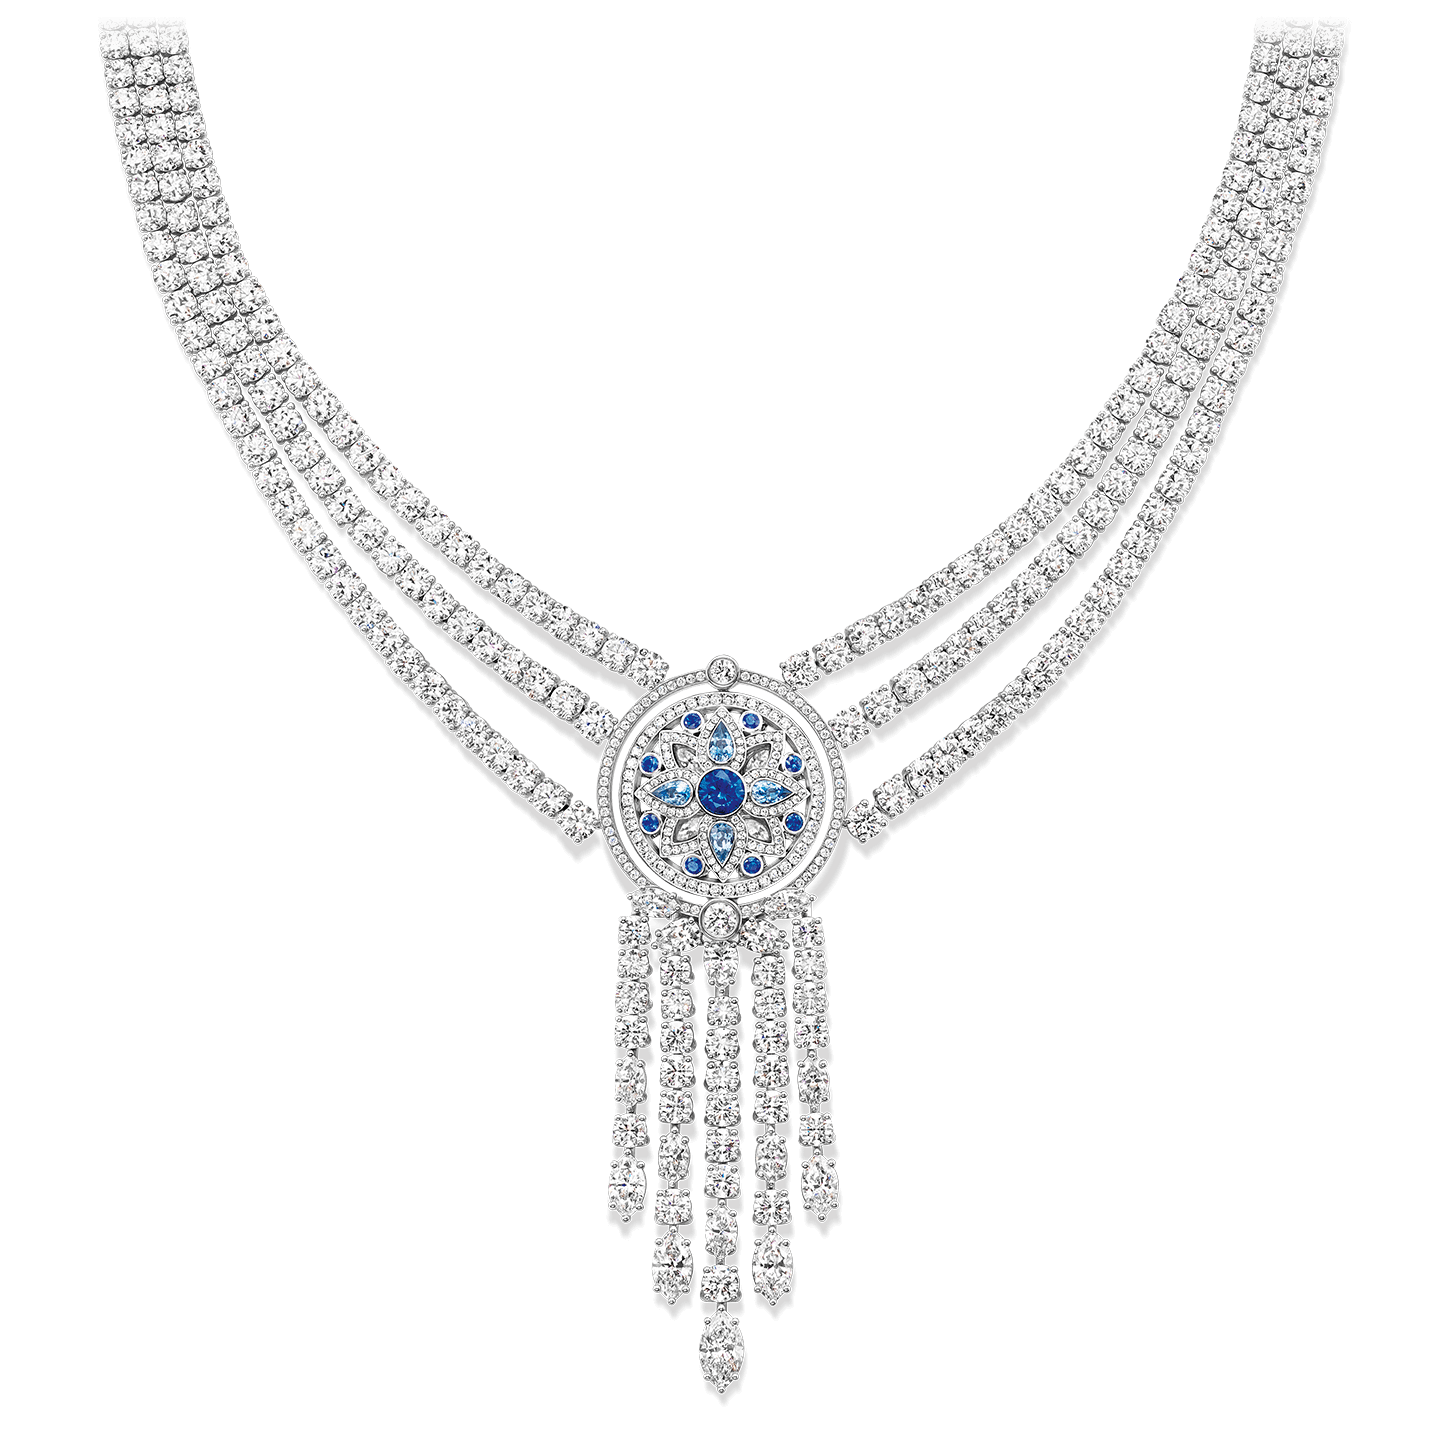 A three-row necklace with 4 pear-shaped aquamarines, 9 round sapphires, 686 marquise, pear-shaped, and round brilliant diamonds, set in platinum. The center motif is reversible.